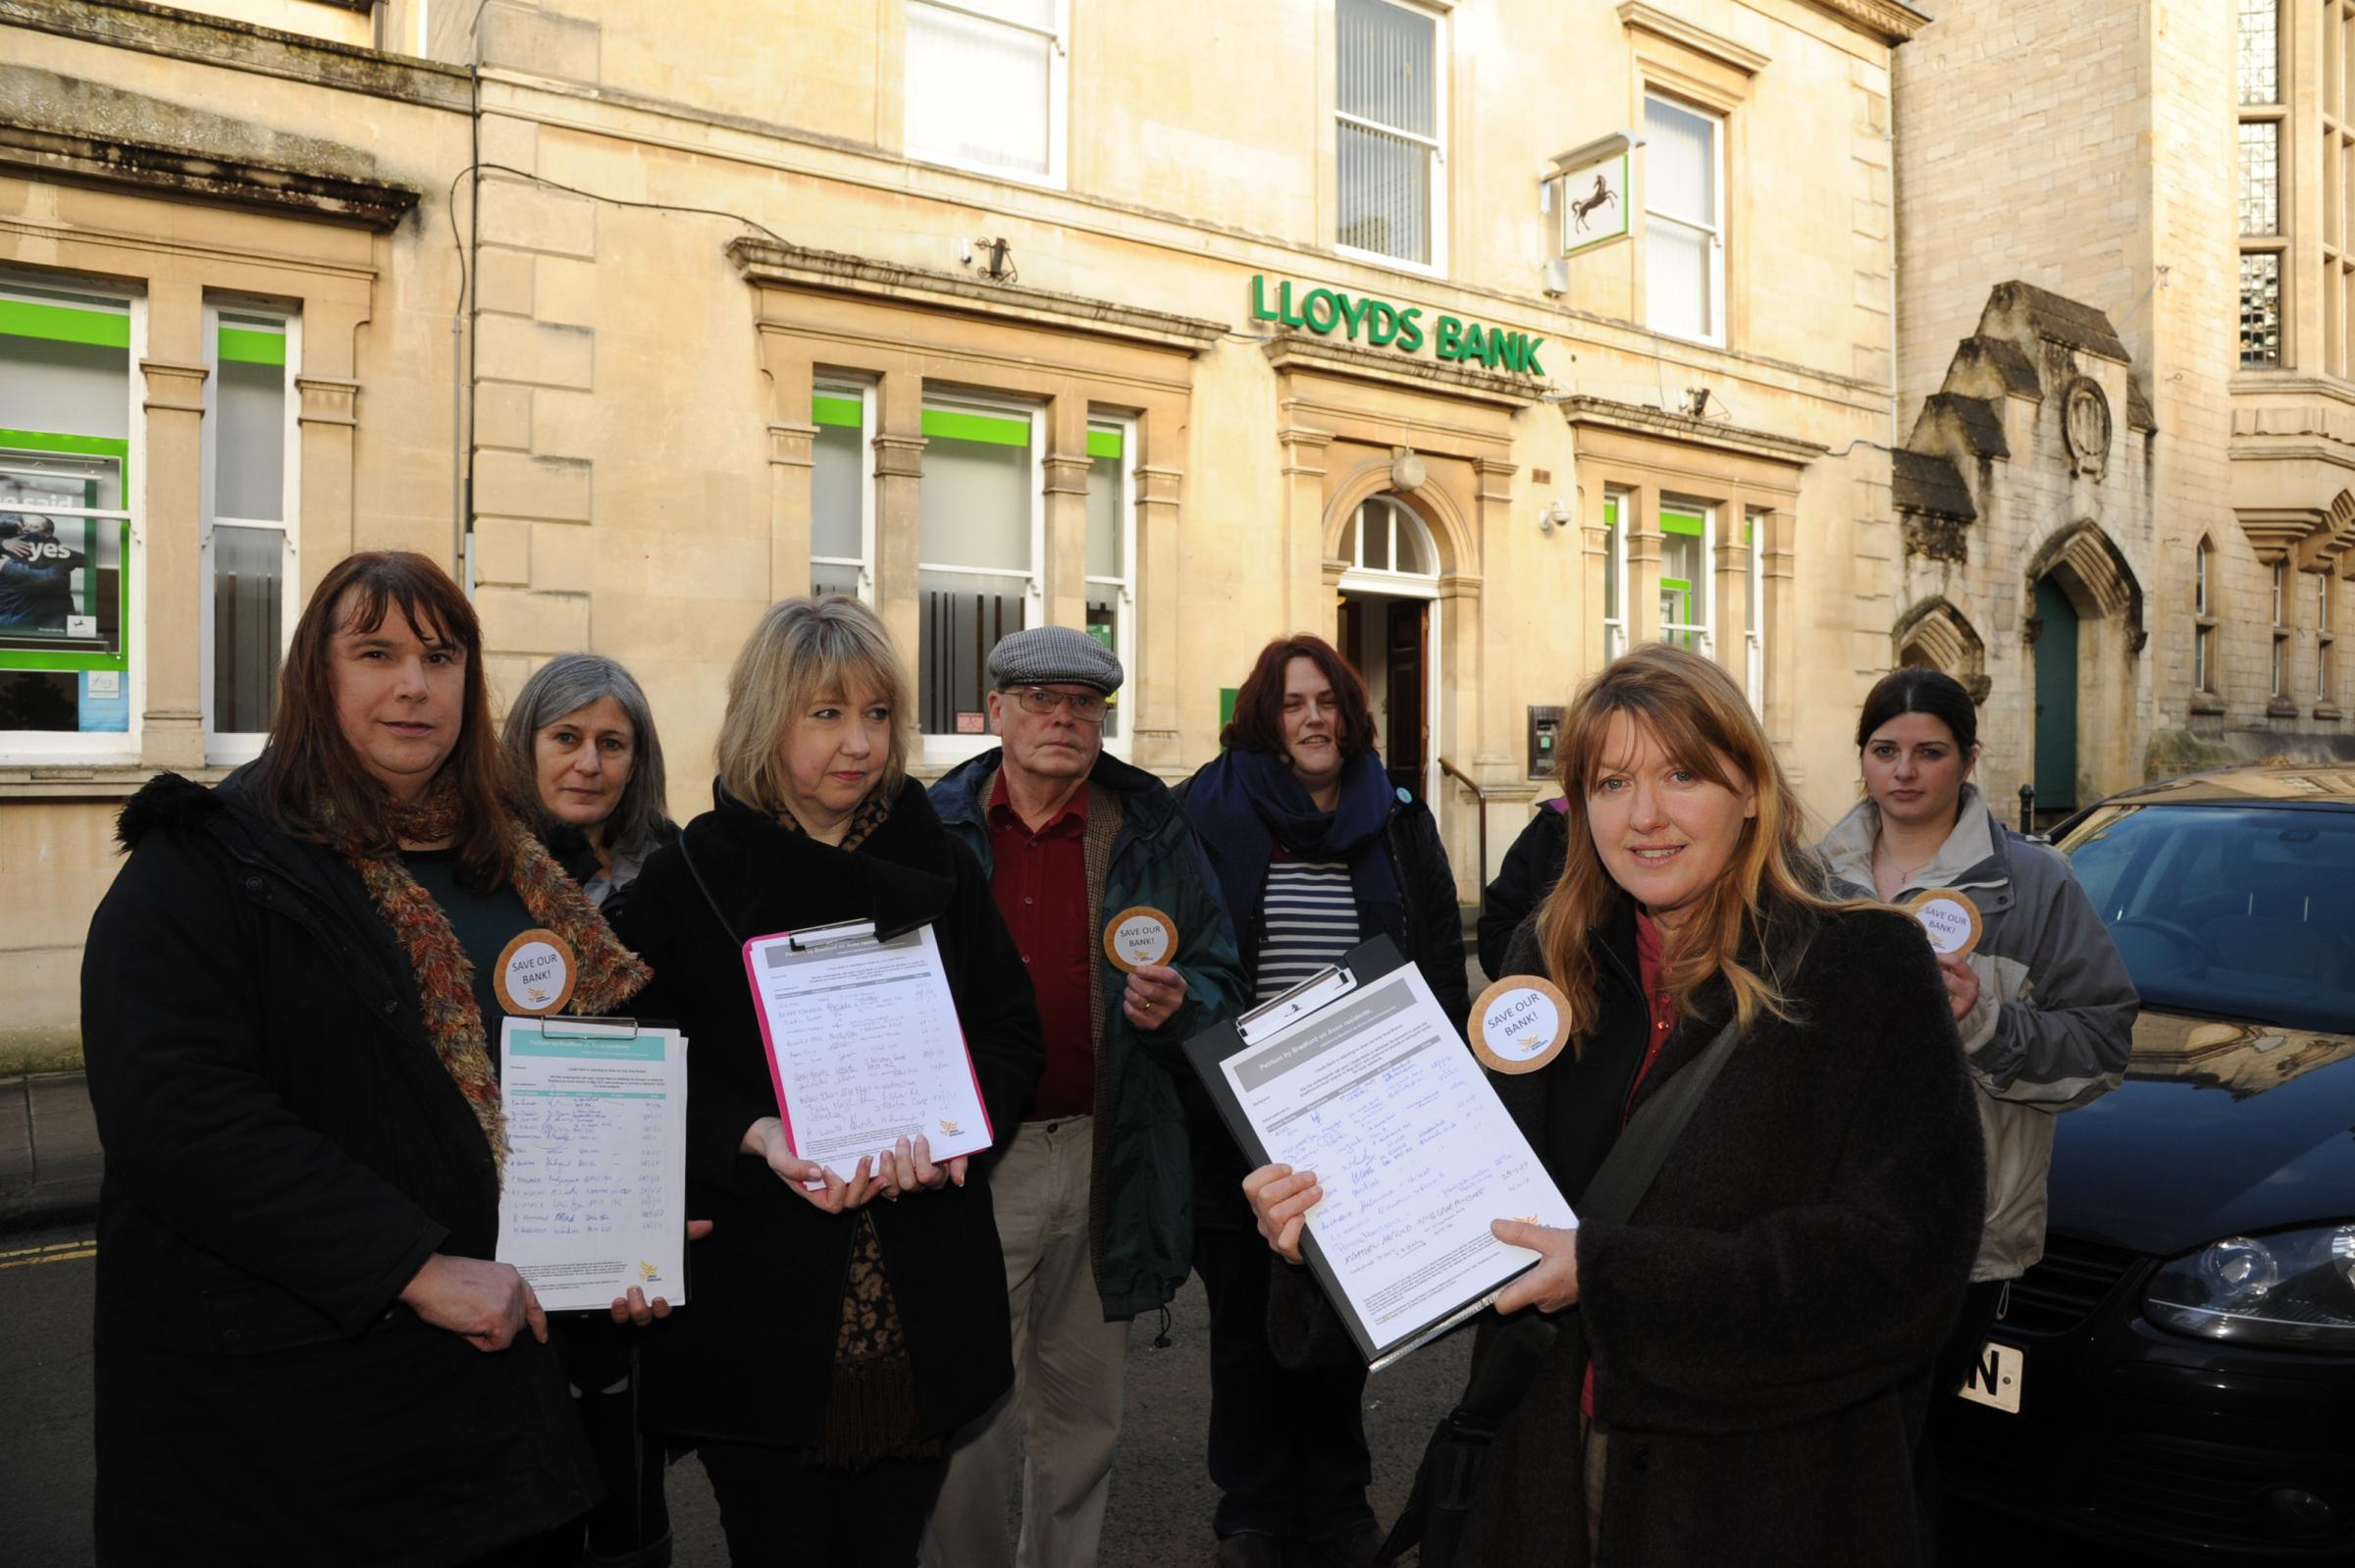 Wiltshire Councillor Sarah Gibson with protestors against the closure of Lloyds Bank in Church Street, Bradford on Avon Photo: Trevor Porter 58187/4